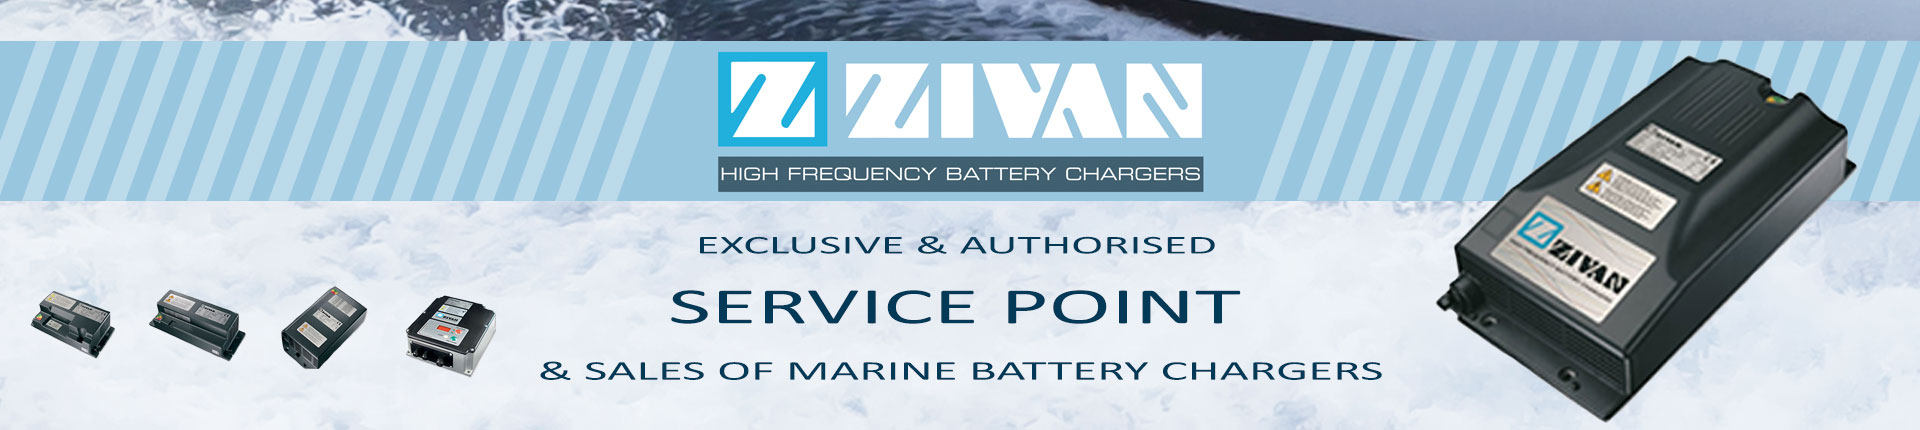 zivan-electronaval-greece-battery-chargers-marine